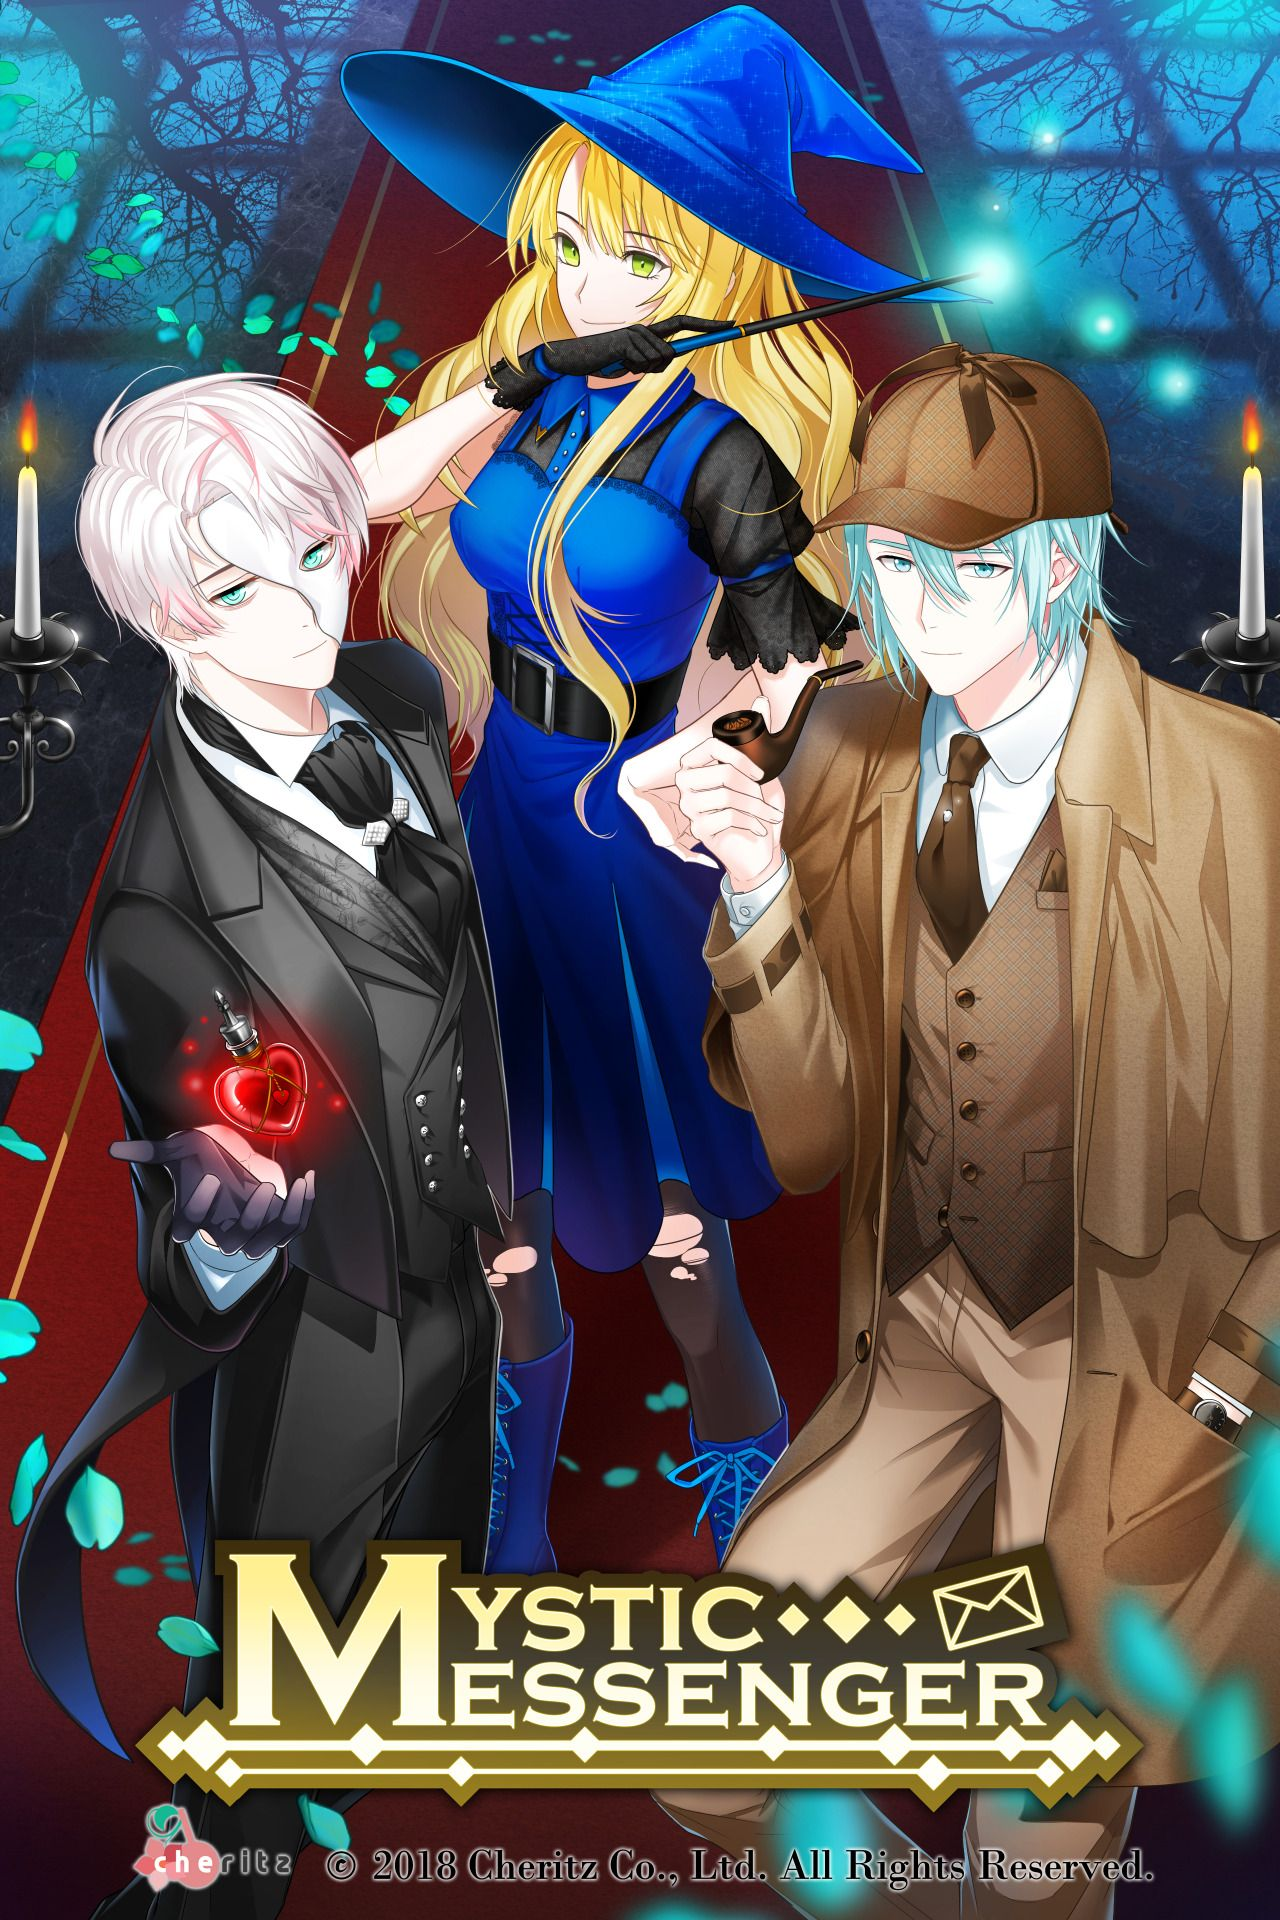 [MM]Announcement on Halloween Event with MM Characters